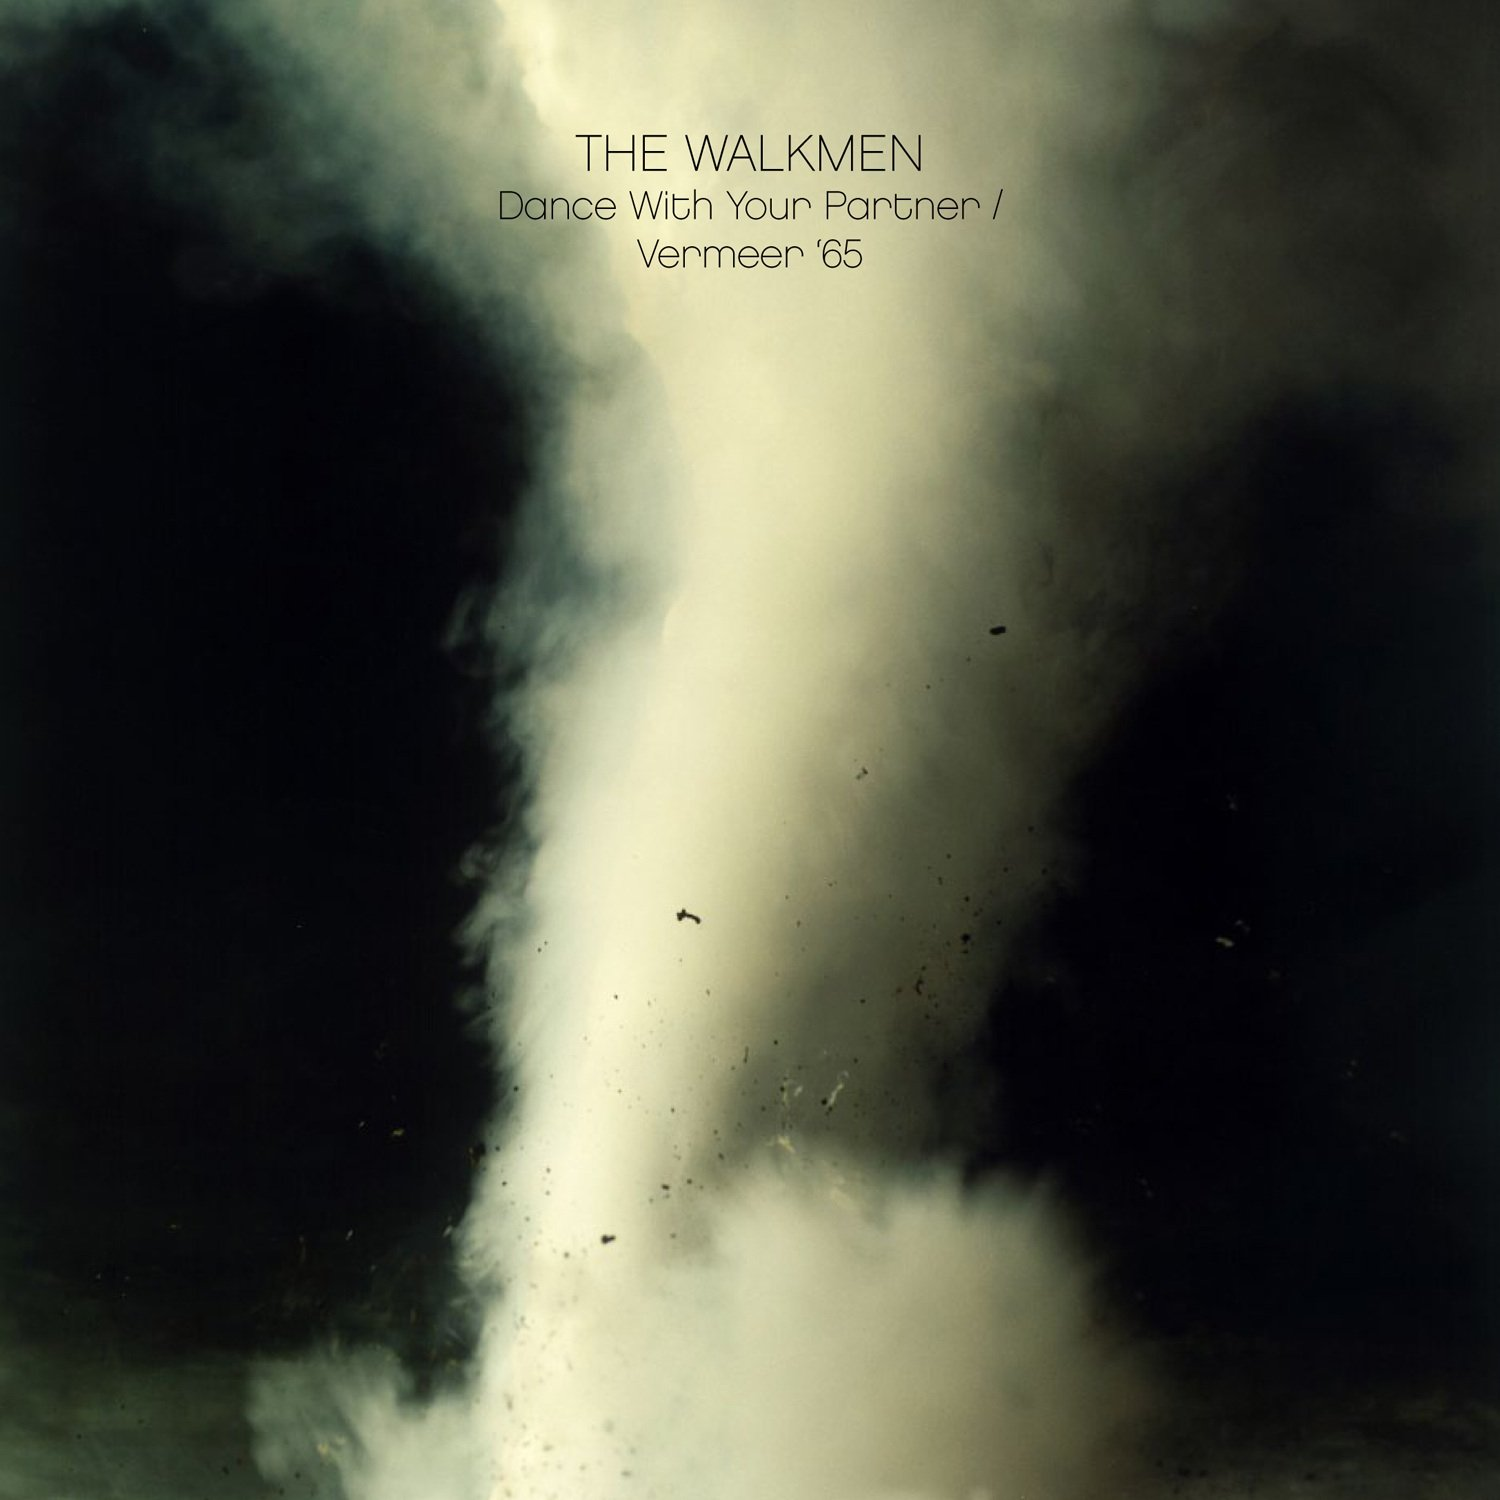 The Walkmen - Dance With Your Partner/Vermee